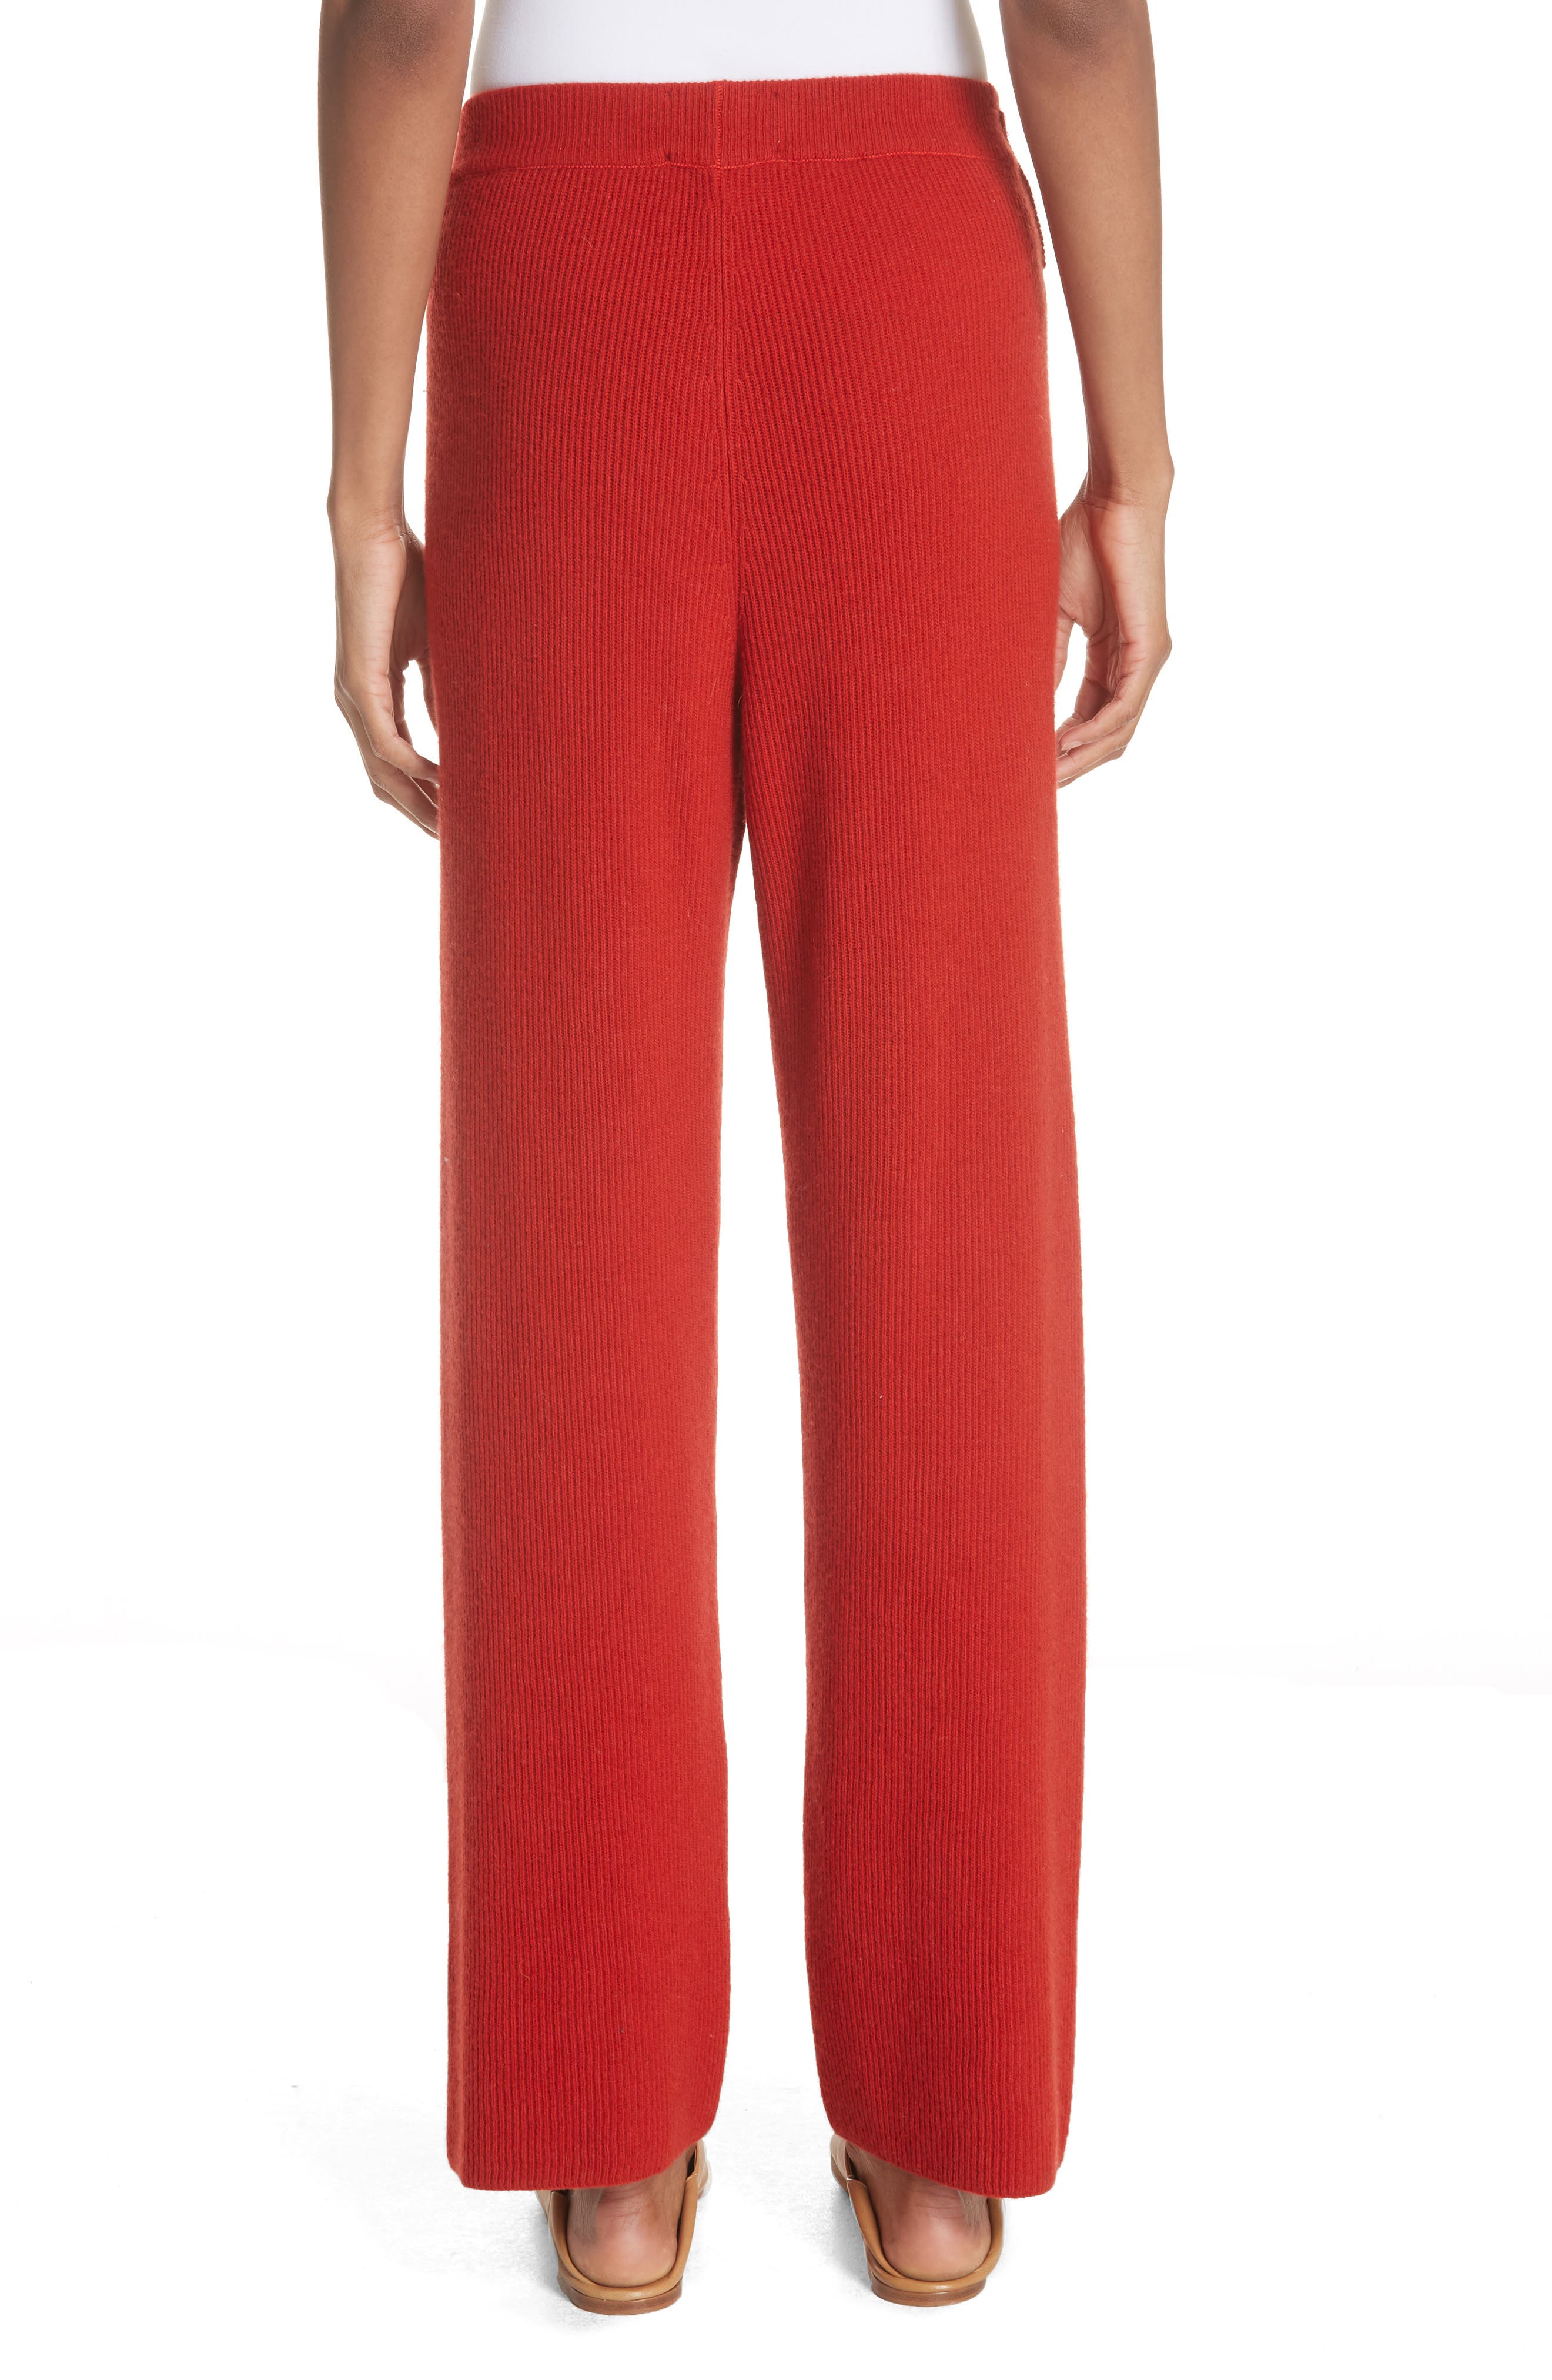 Tigre Merino Wool & Cashmere Blend Pants,                             Alternate thumbnail 2, color,                             RED